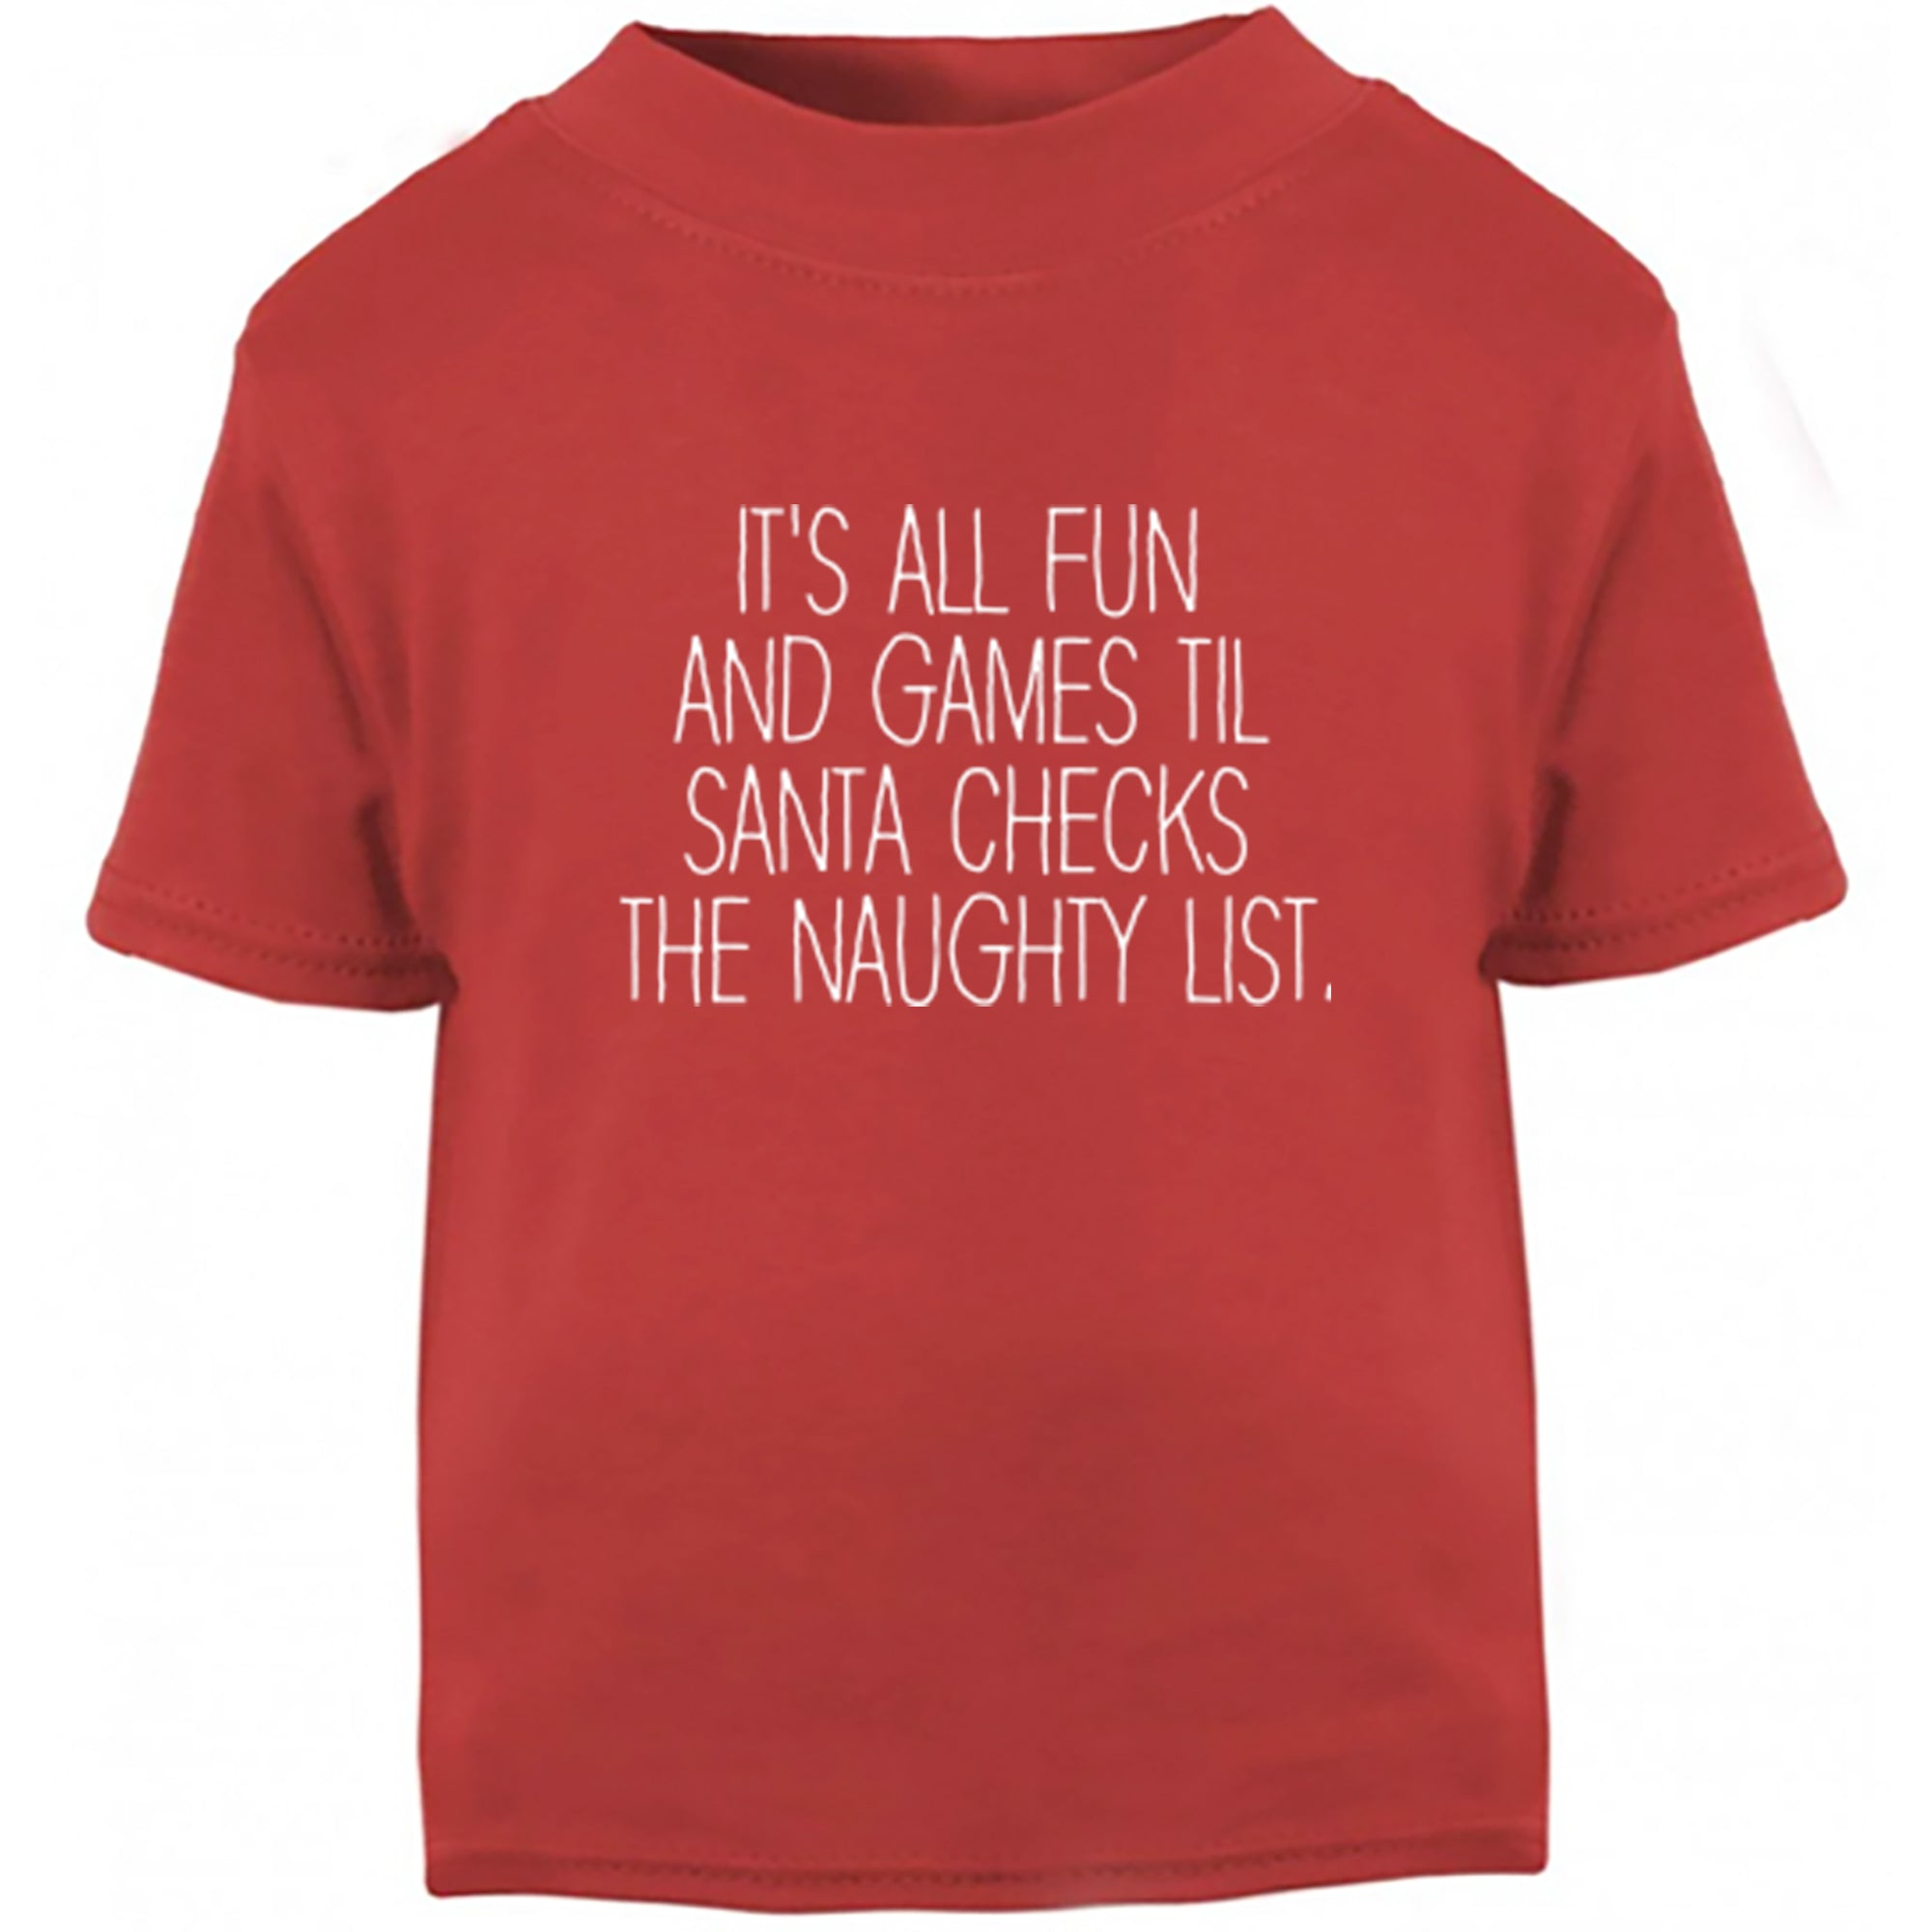 It's All Fun And Games Til Santa Checks The Naughty List Childrens Ages 3/4-12/14 Printed Fit T-Shirt S0896 - Illustrated Identity Ltd.